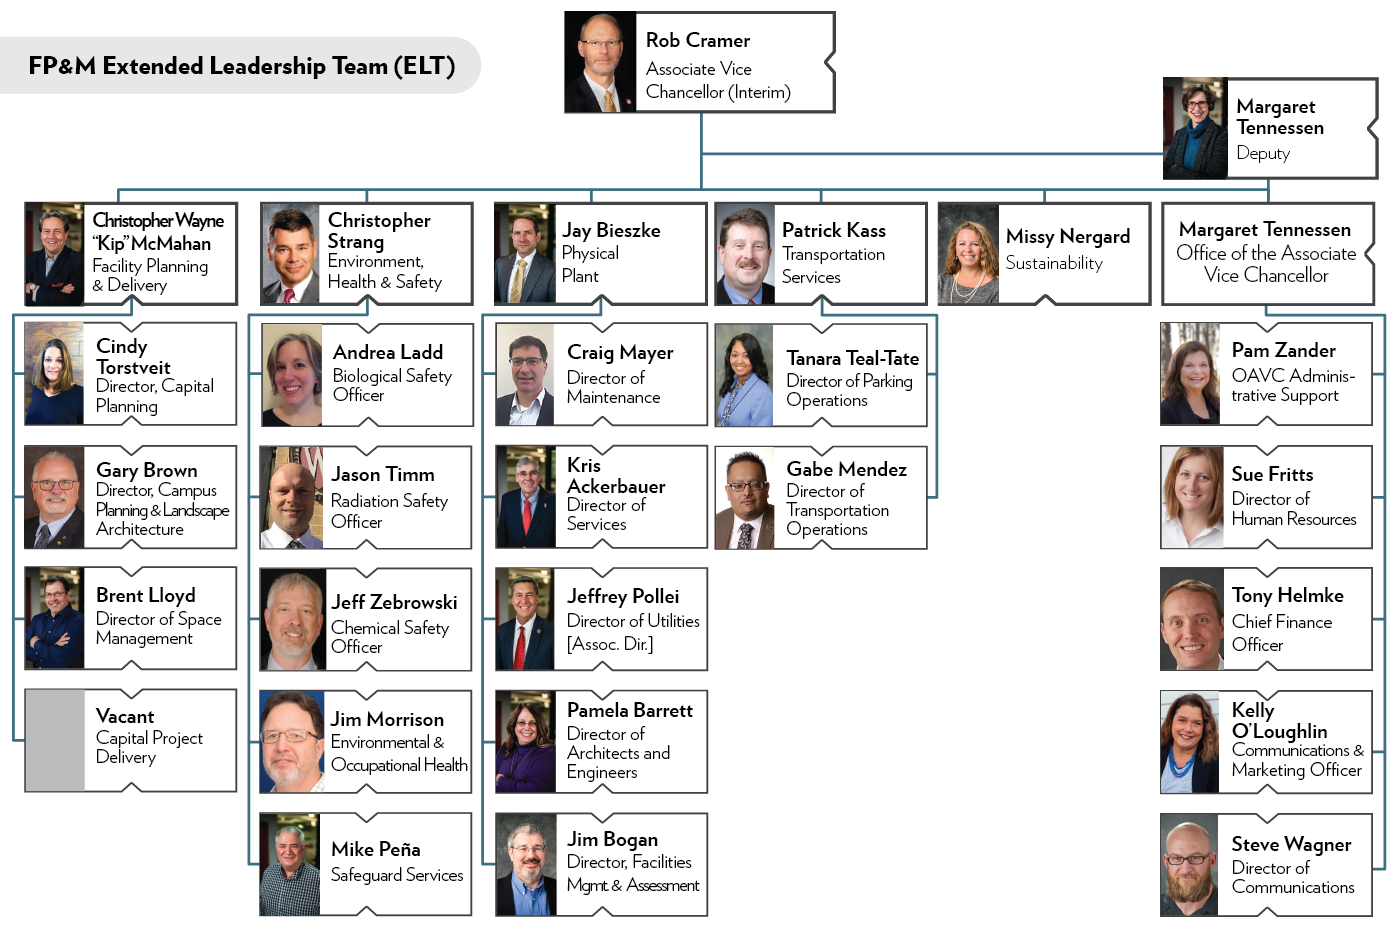 Organizational chart illustration: depicts 28 Facilities Planning & Management staff members with their headshot photo, name, and title